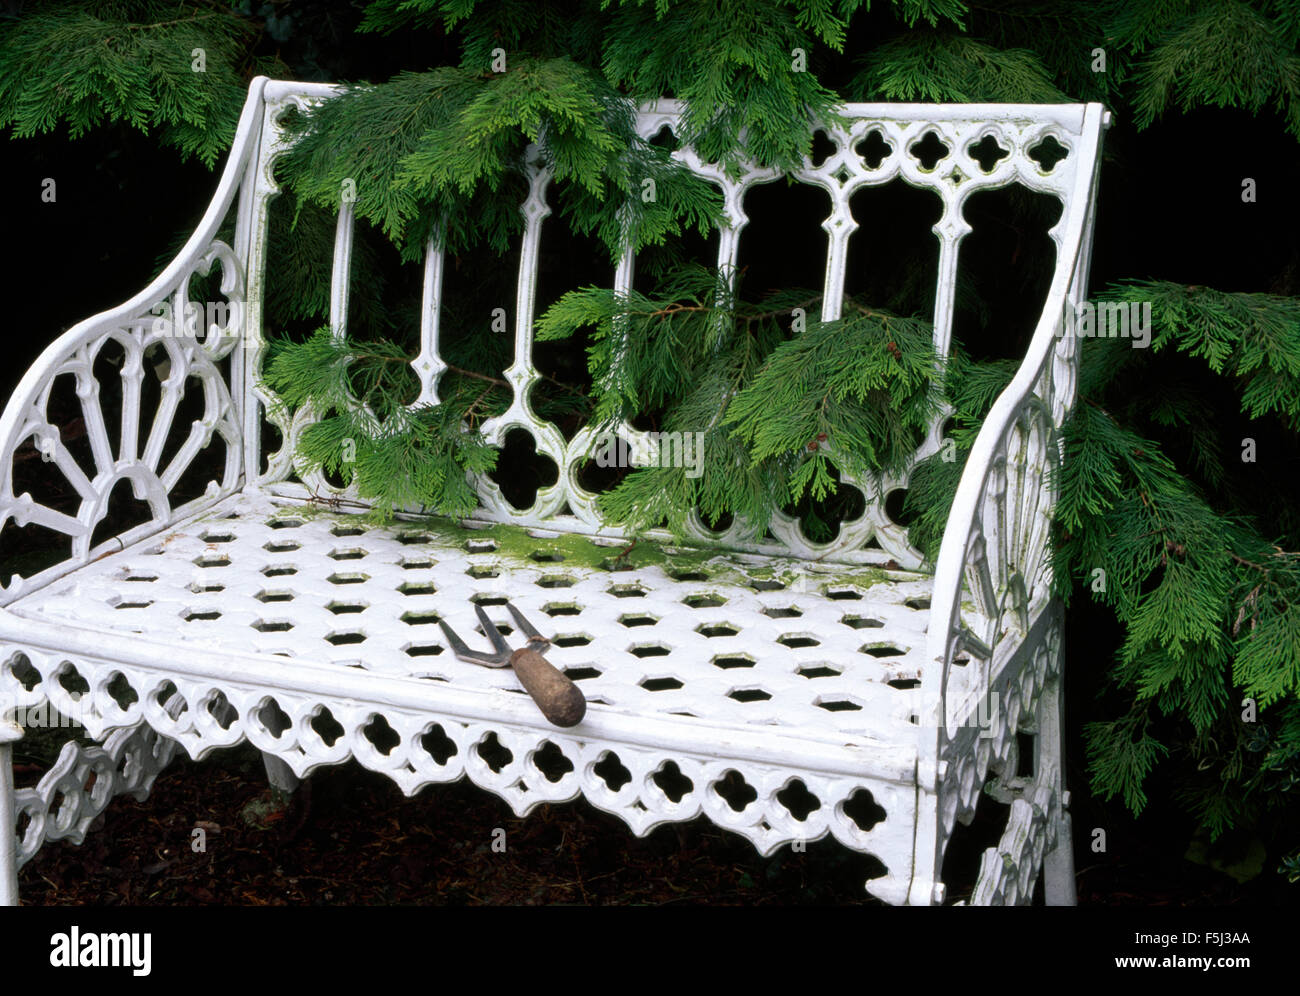 Small Garden Fork On A White Wrought Iron Garden Bench In Front Of A Green  Conifer Shrub